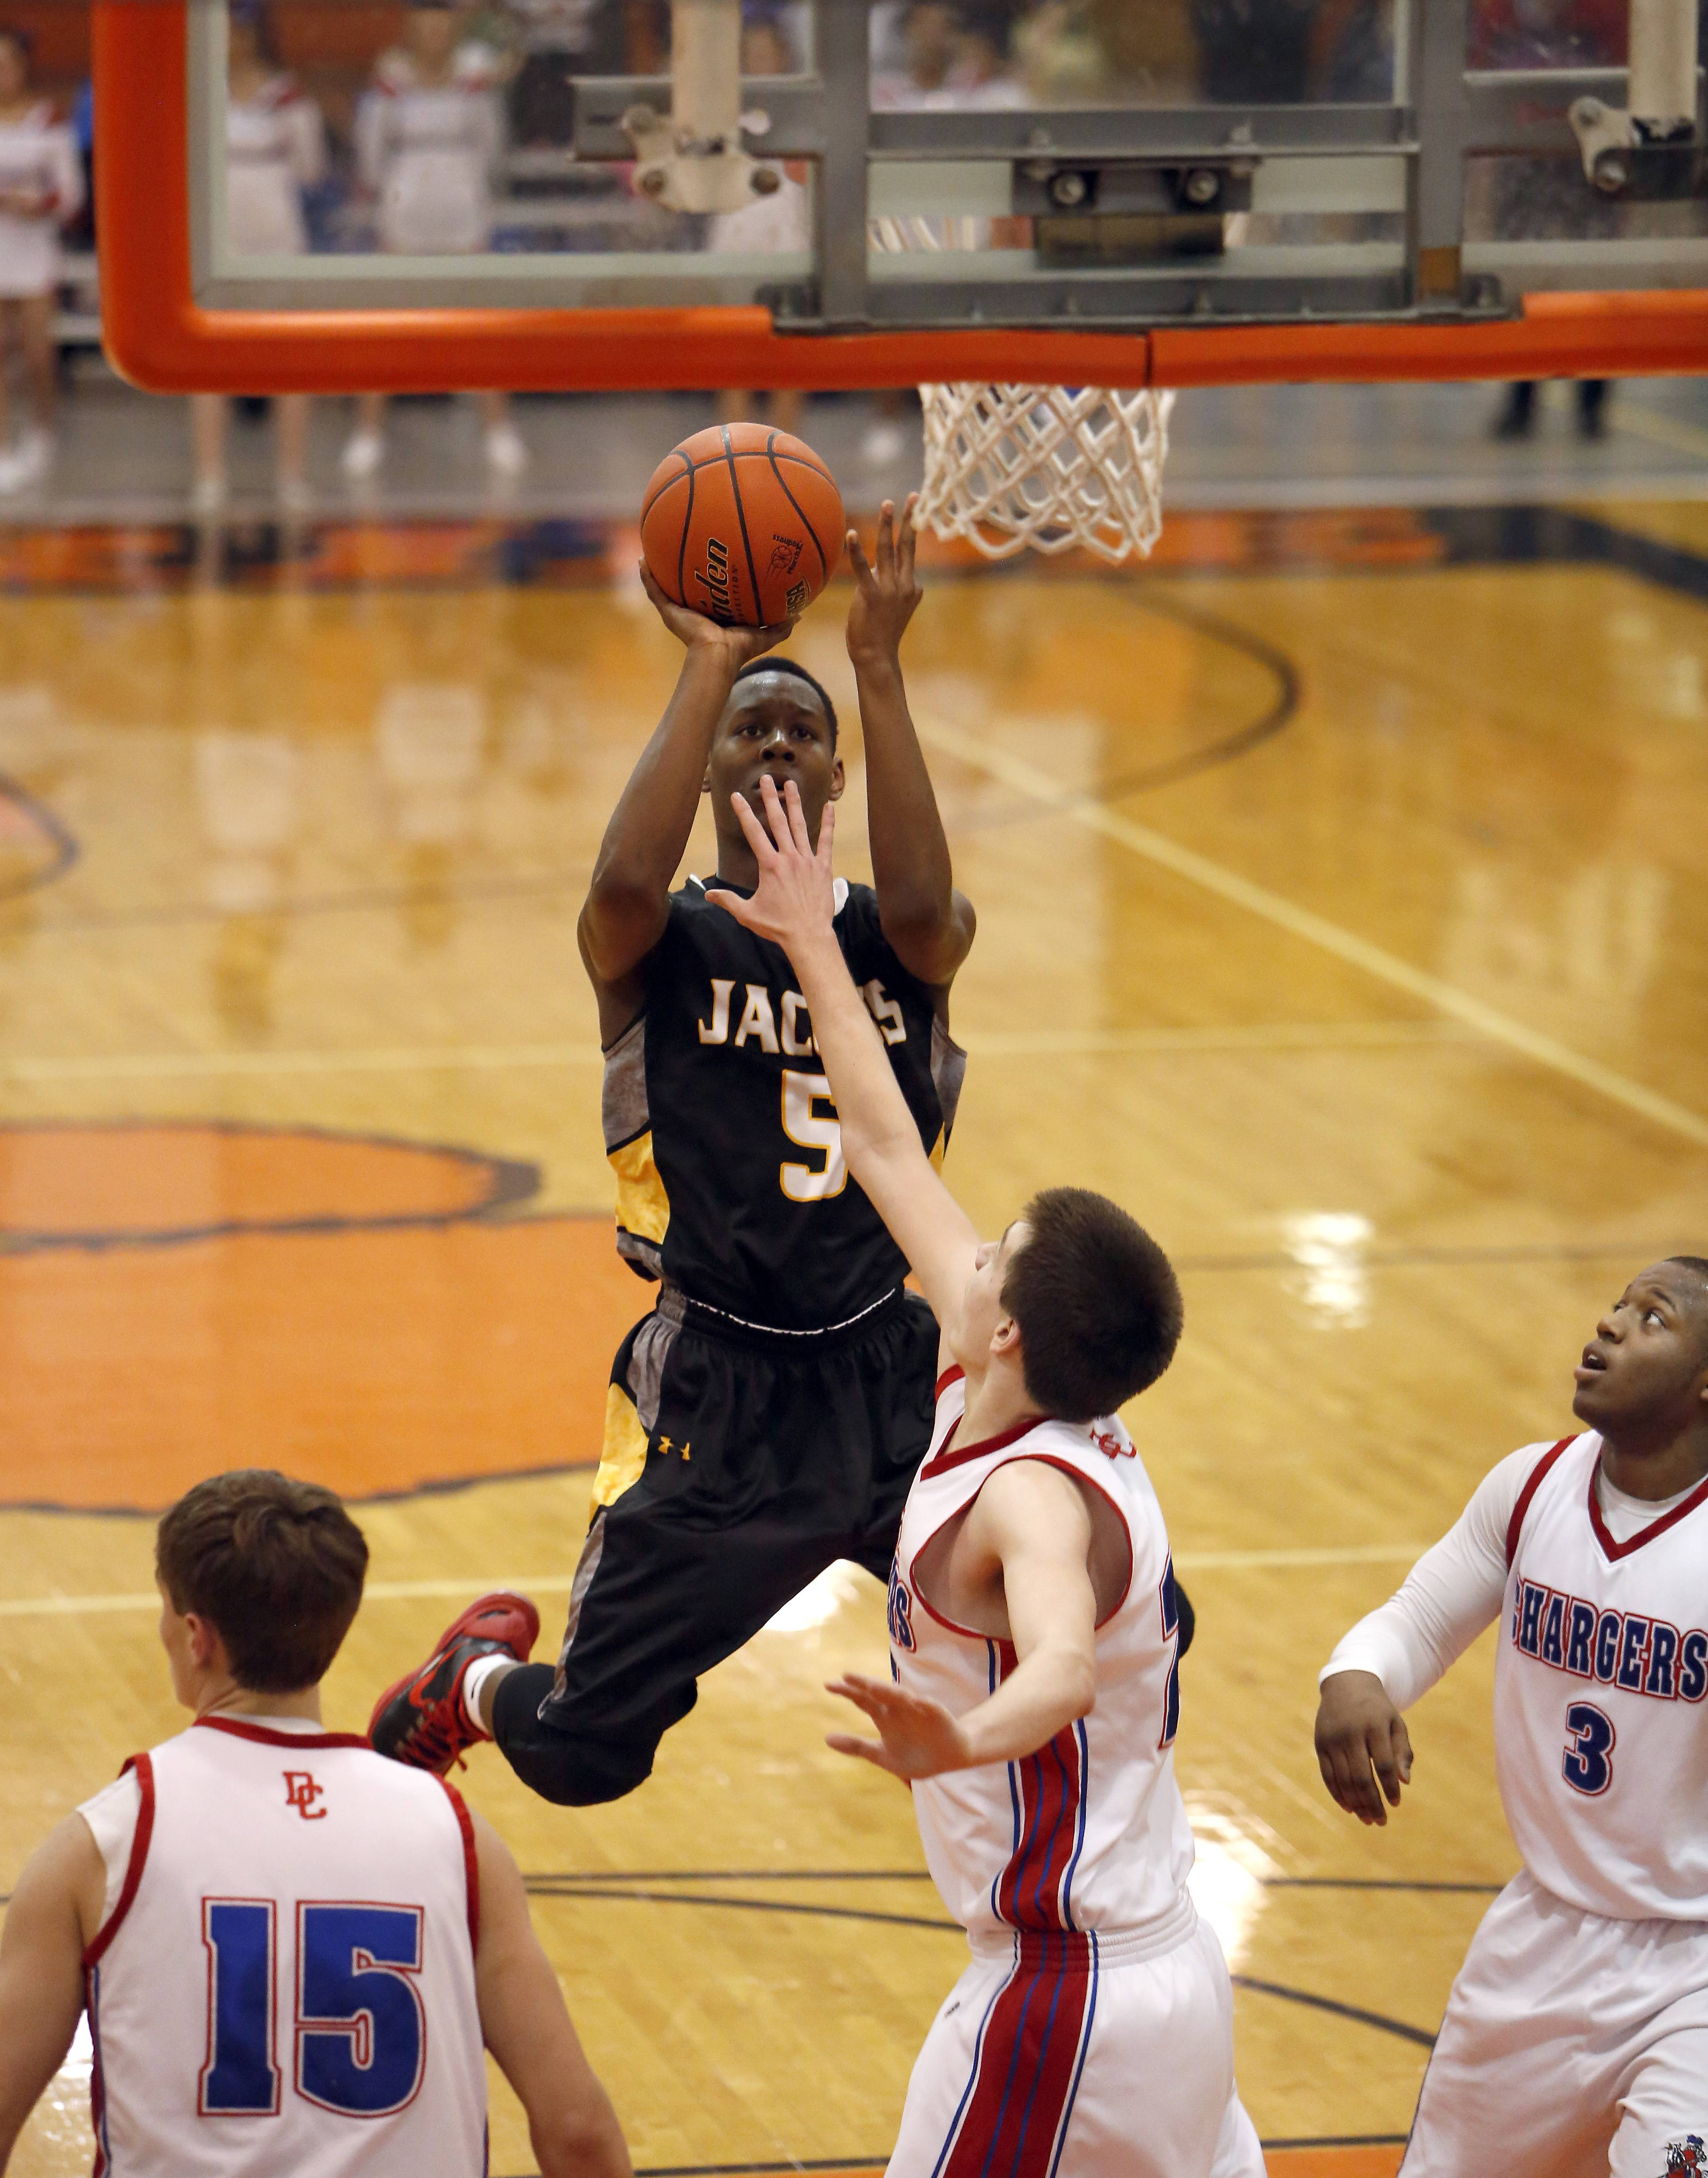 Jacobs' Chrishawn Orange goes to the basket during Class 4A regional championship action Friday at Crystal Lake Central.